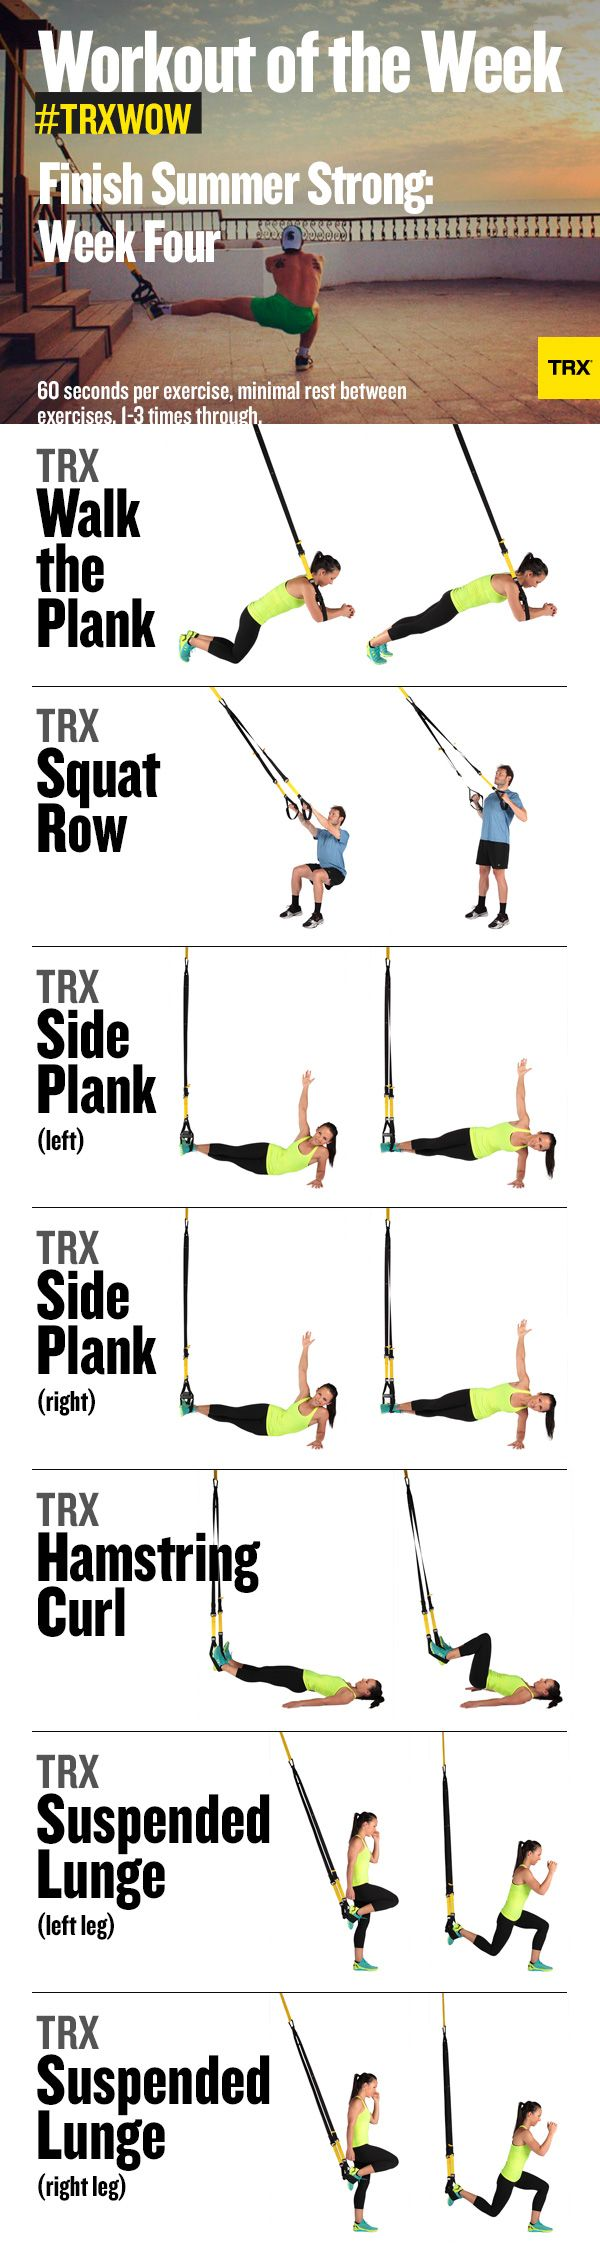 Finish summer #strong with our #TRX workout of the week!   #TRXWOW #Fitness